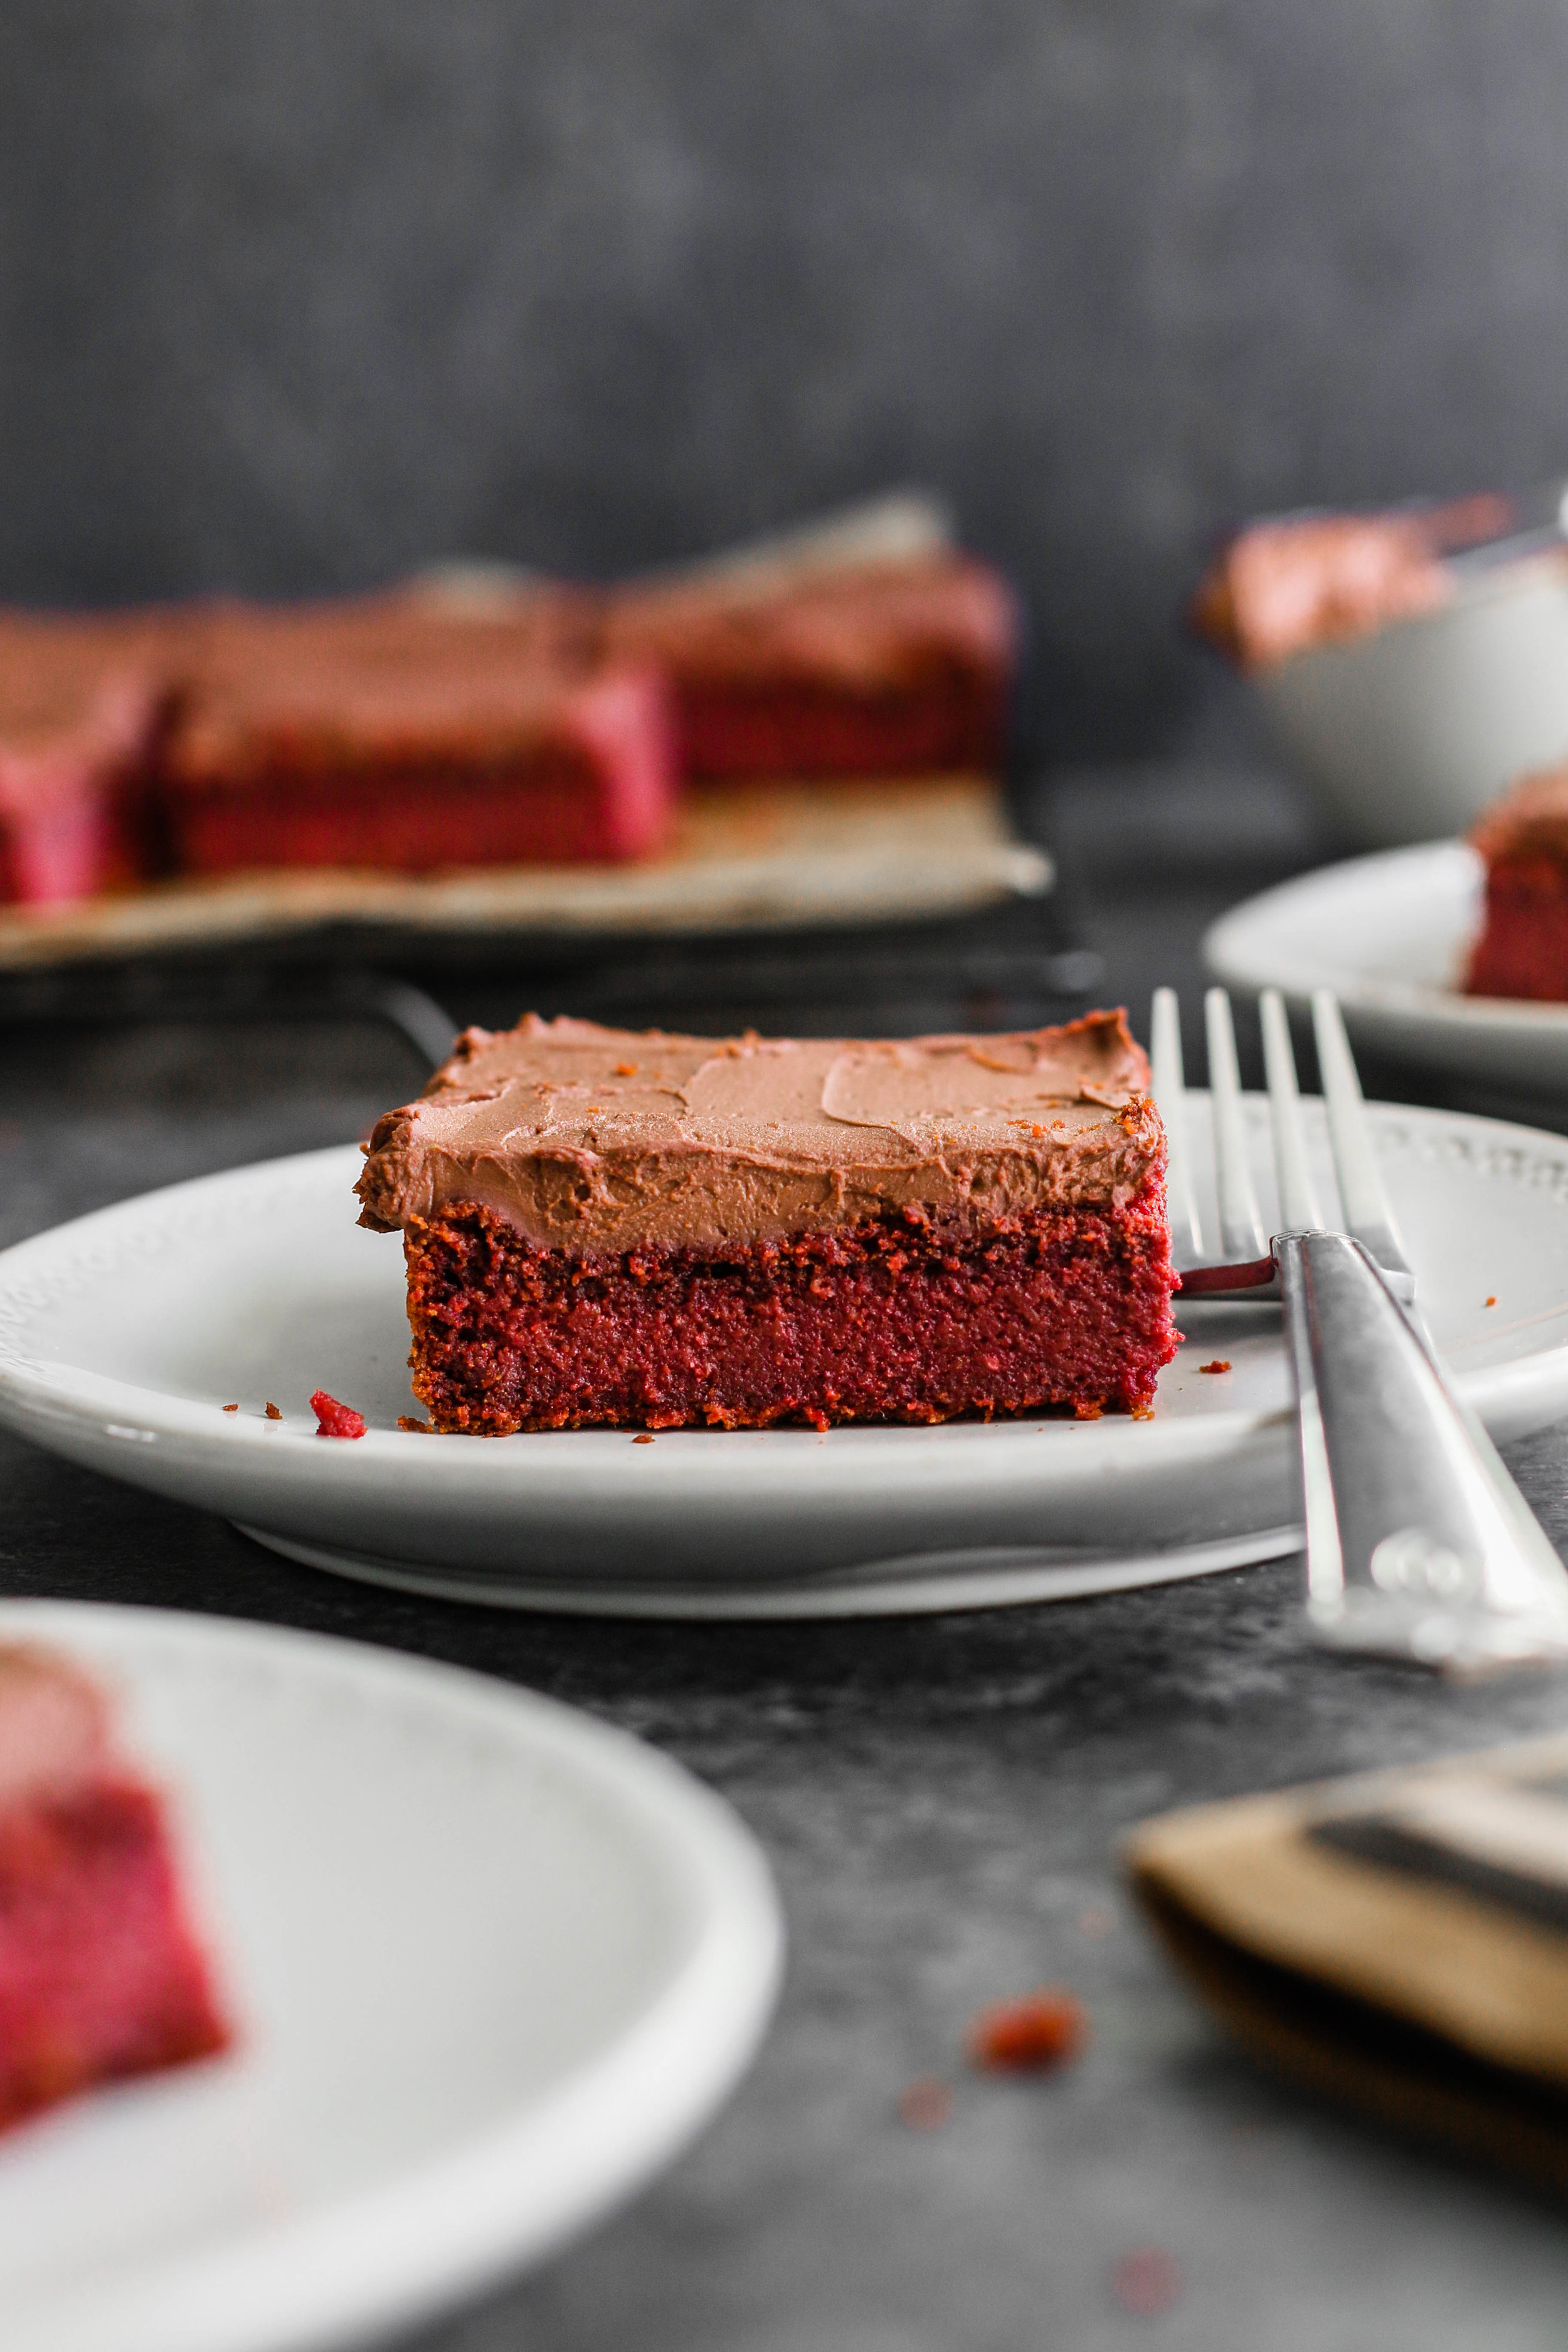 Vegan and gluten-free  red velvet cake  sweetened with unrefined coconut sugar and made red with raw beets. Finish it off with a decadent 2-ingredient chocolate frosting. A blend of oat and almond flour create a fluffy gluten-free flour batter that's sweetened with unrefined coconut sugar.